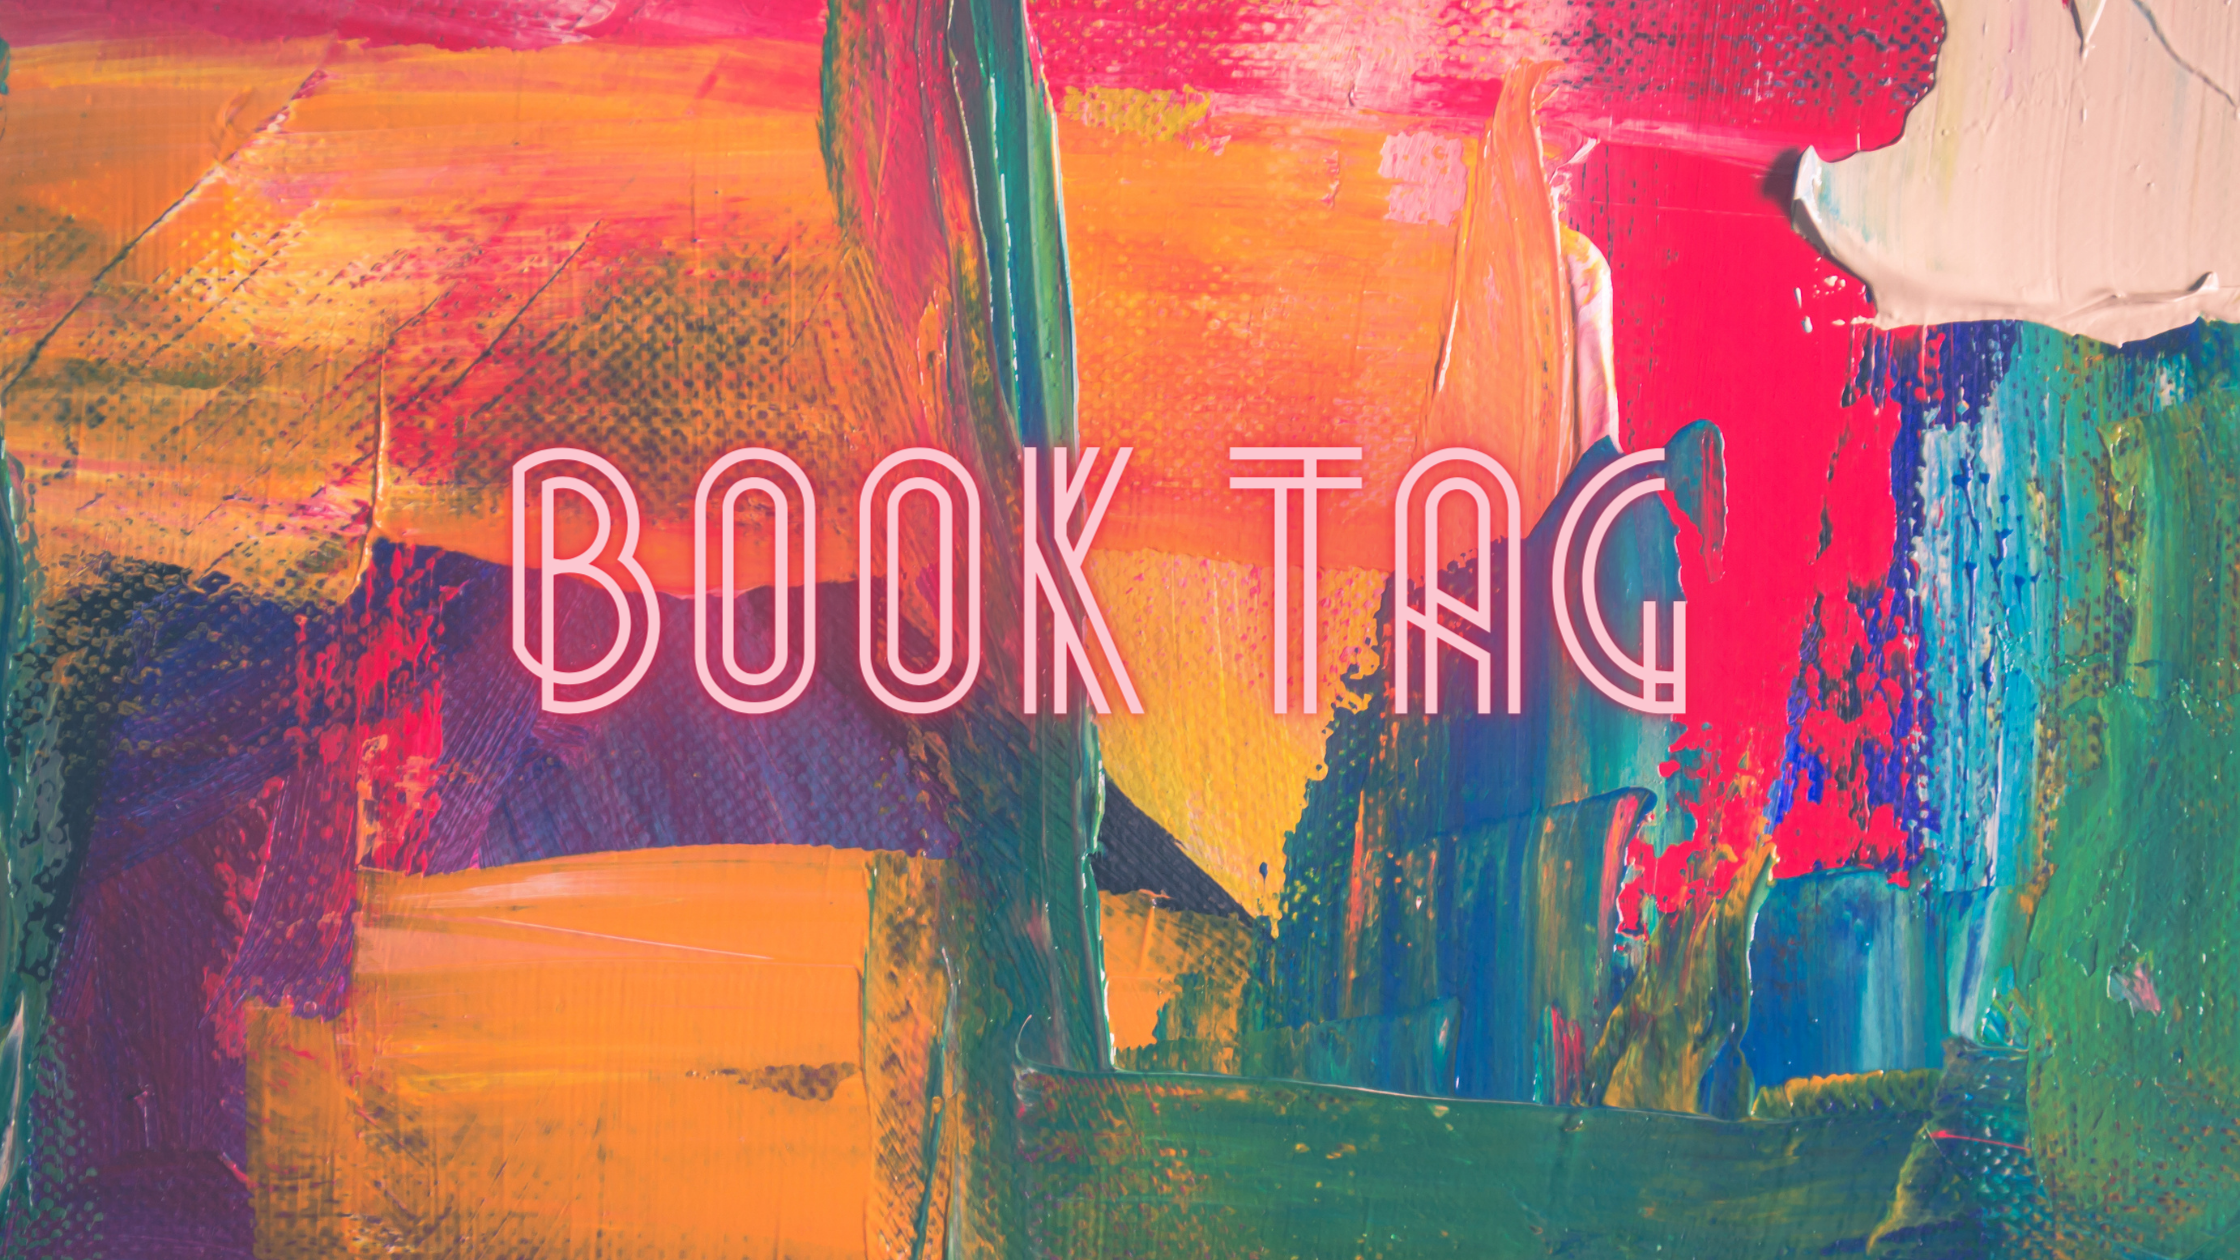 The Recommendations Book Tag